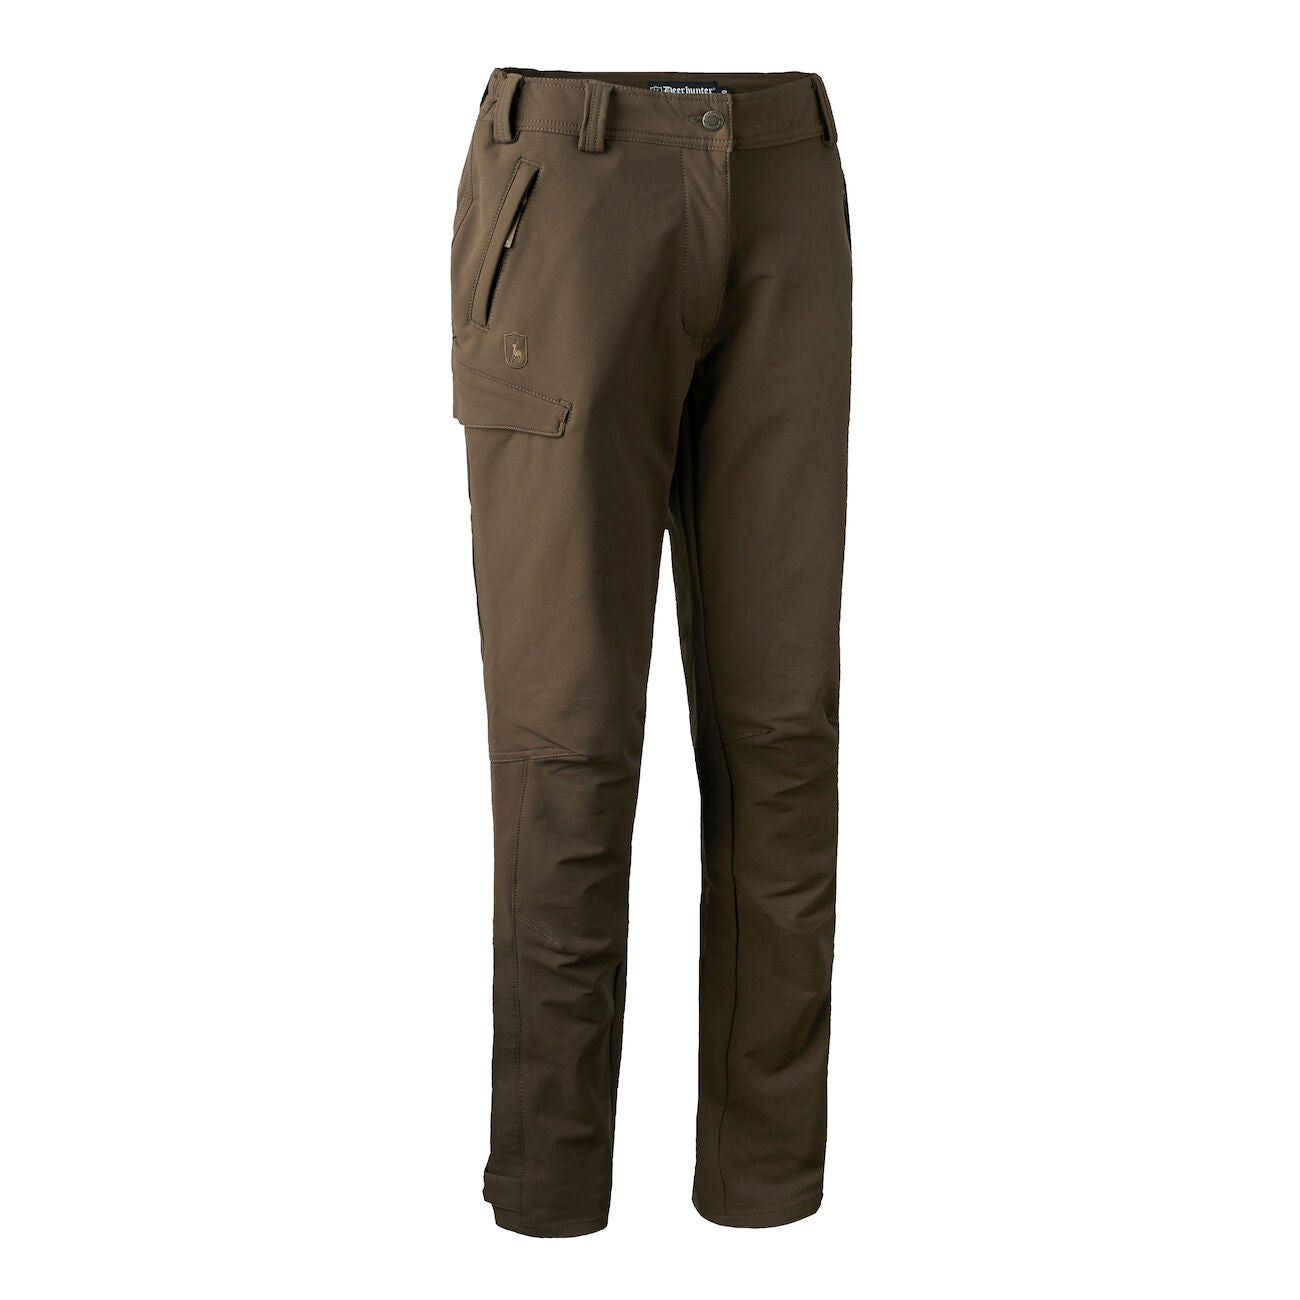 Deerhunter Lady Ann Full Stretch Trouser